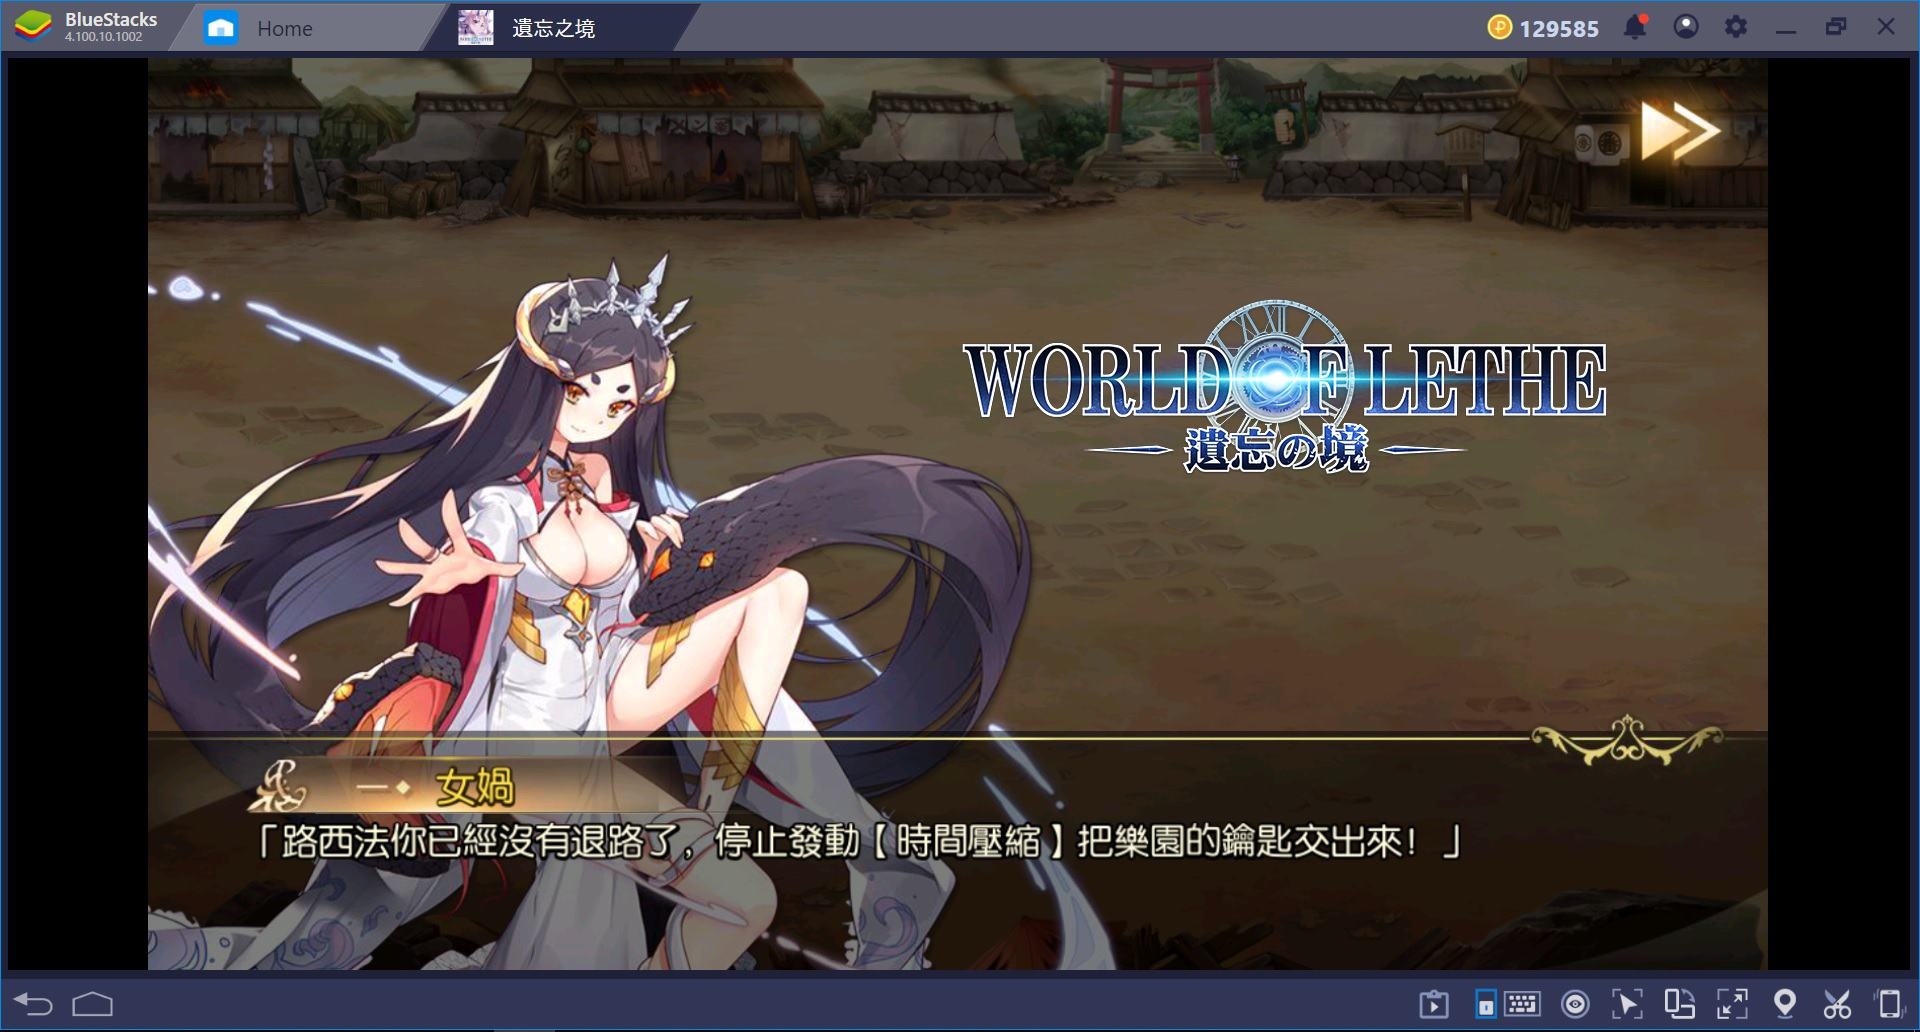 使用 BlueStacks 初次遊玩 遺忘之境:World of Lethe